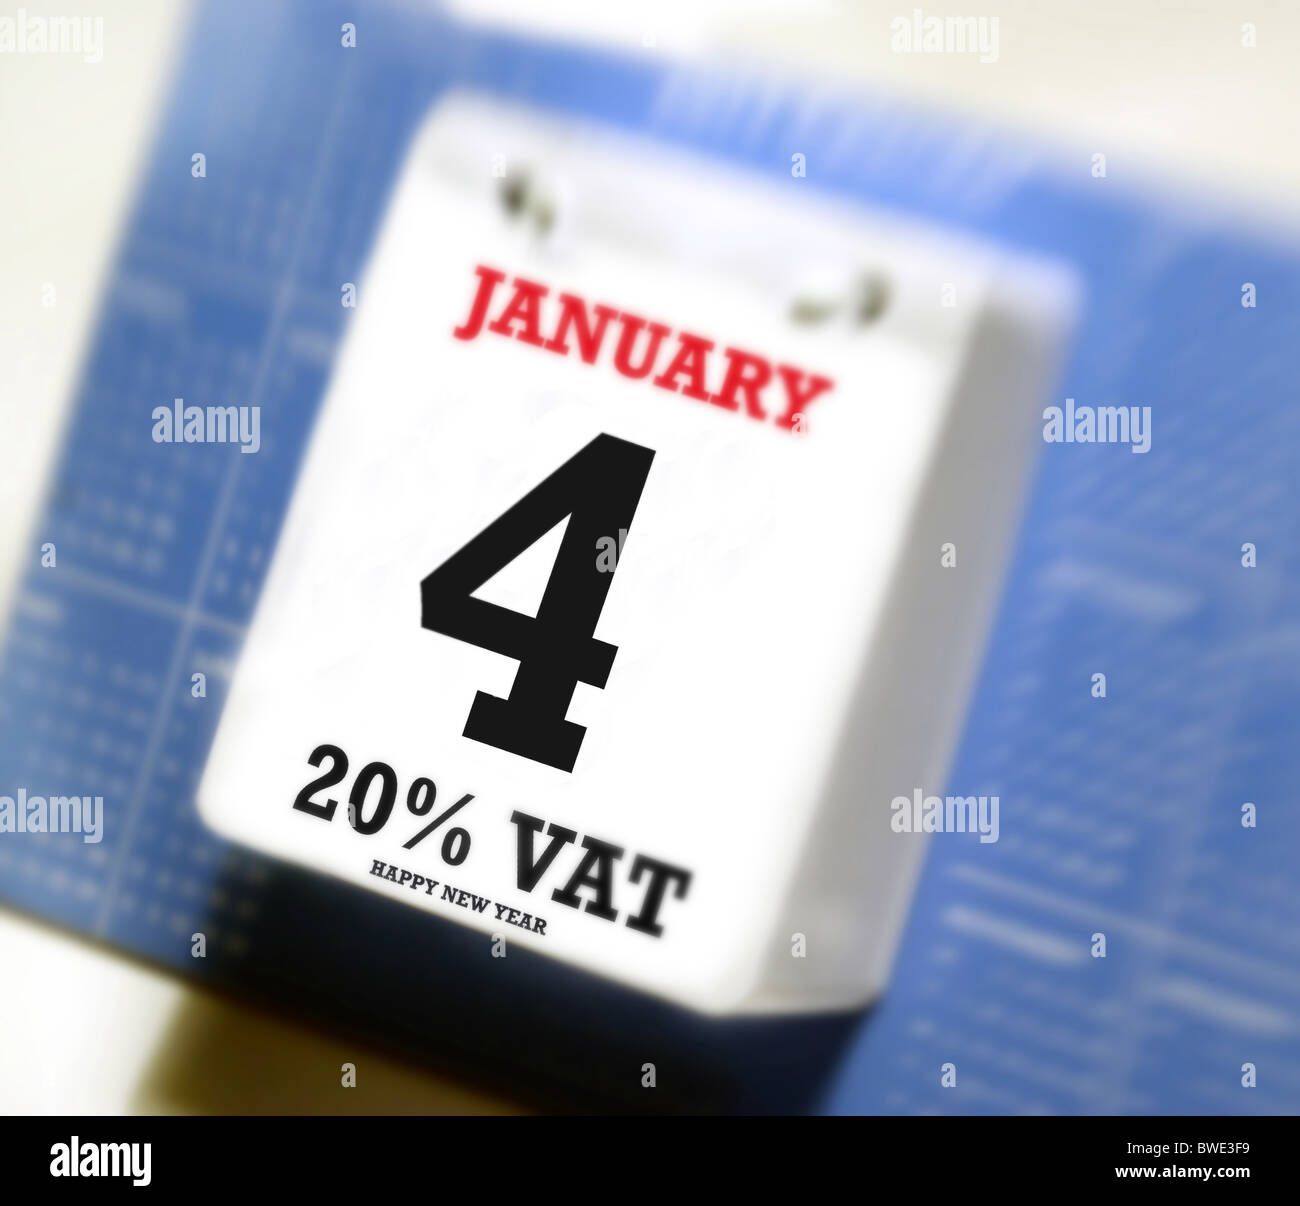 Value added tax increase, reminder showing on a desk calender ( 4th of January ) 20% V.A.T. . Part of the UK austerity - Stock Image